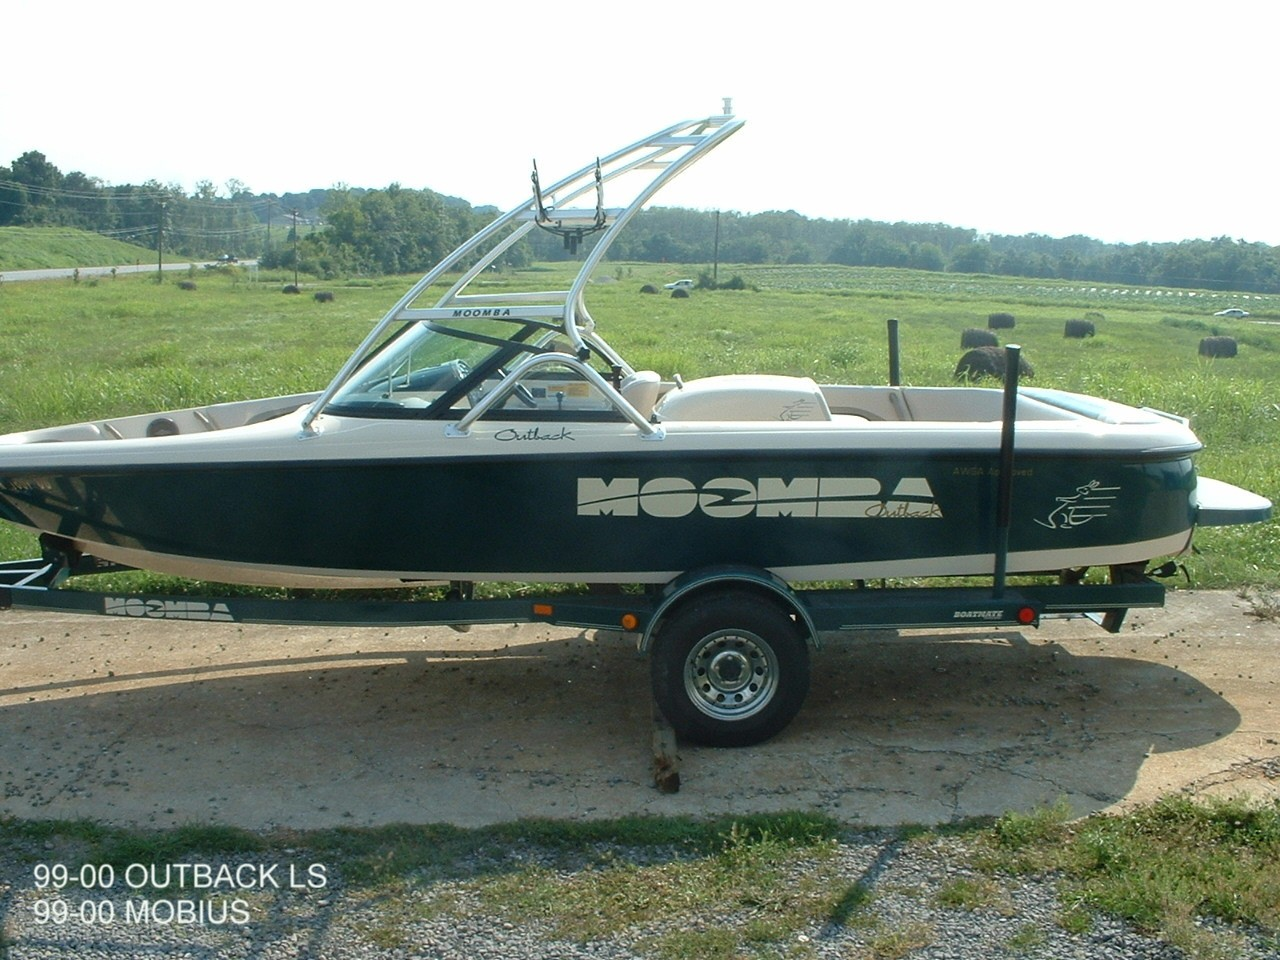 main view of 99 - 00 moomba outback ls with new dimension towers wakeboard tower